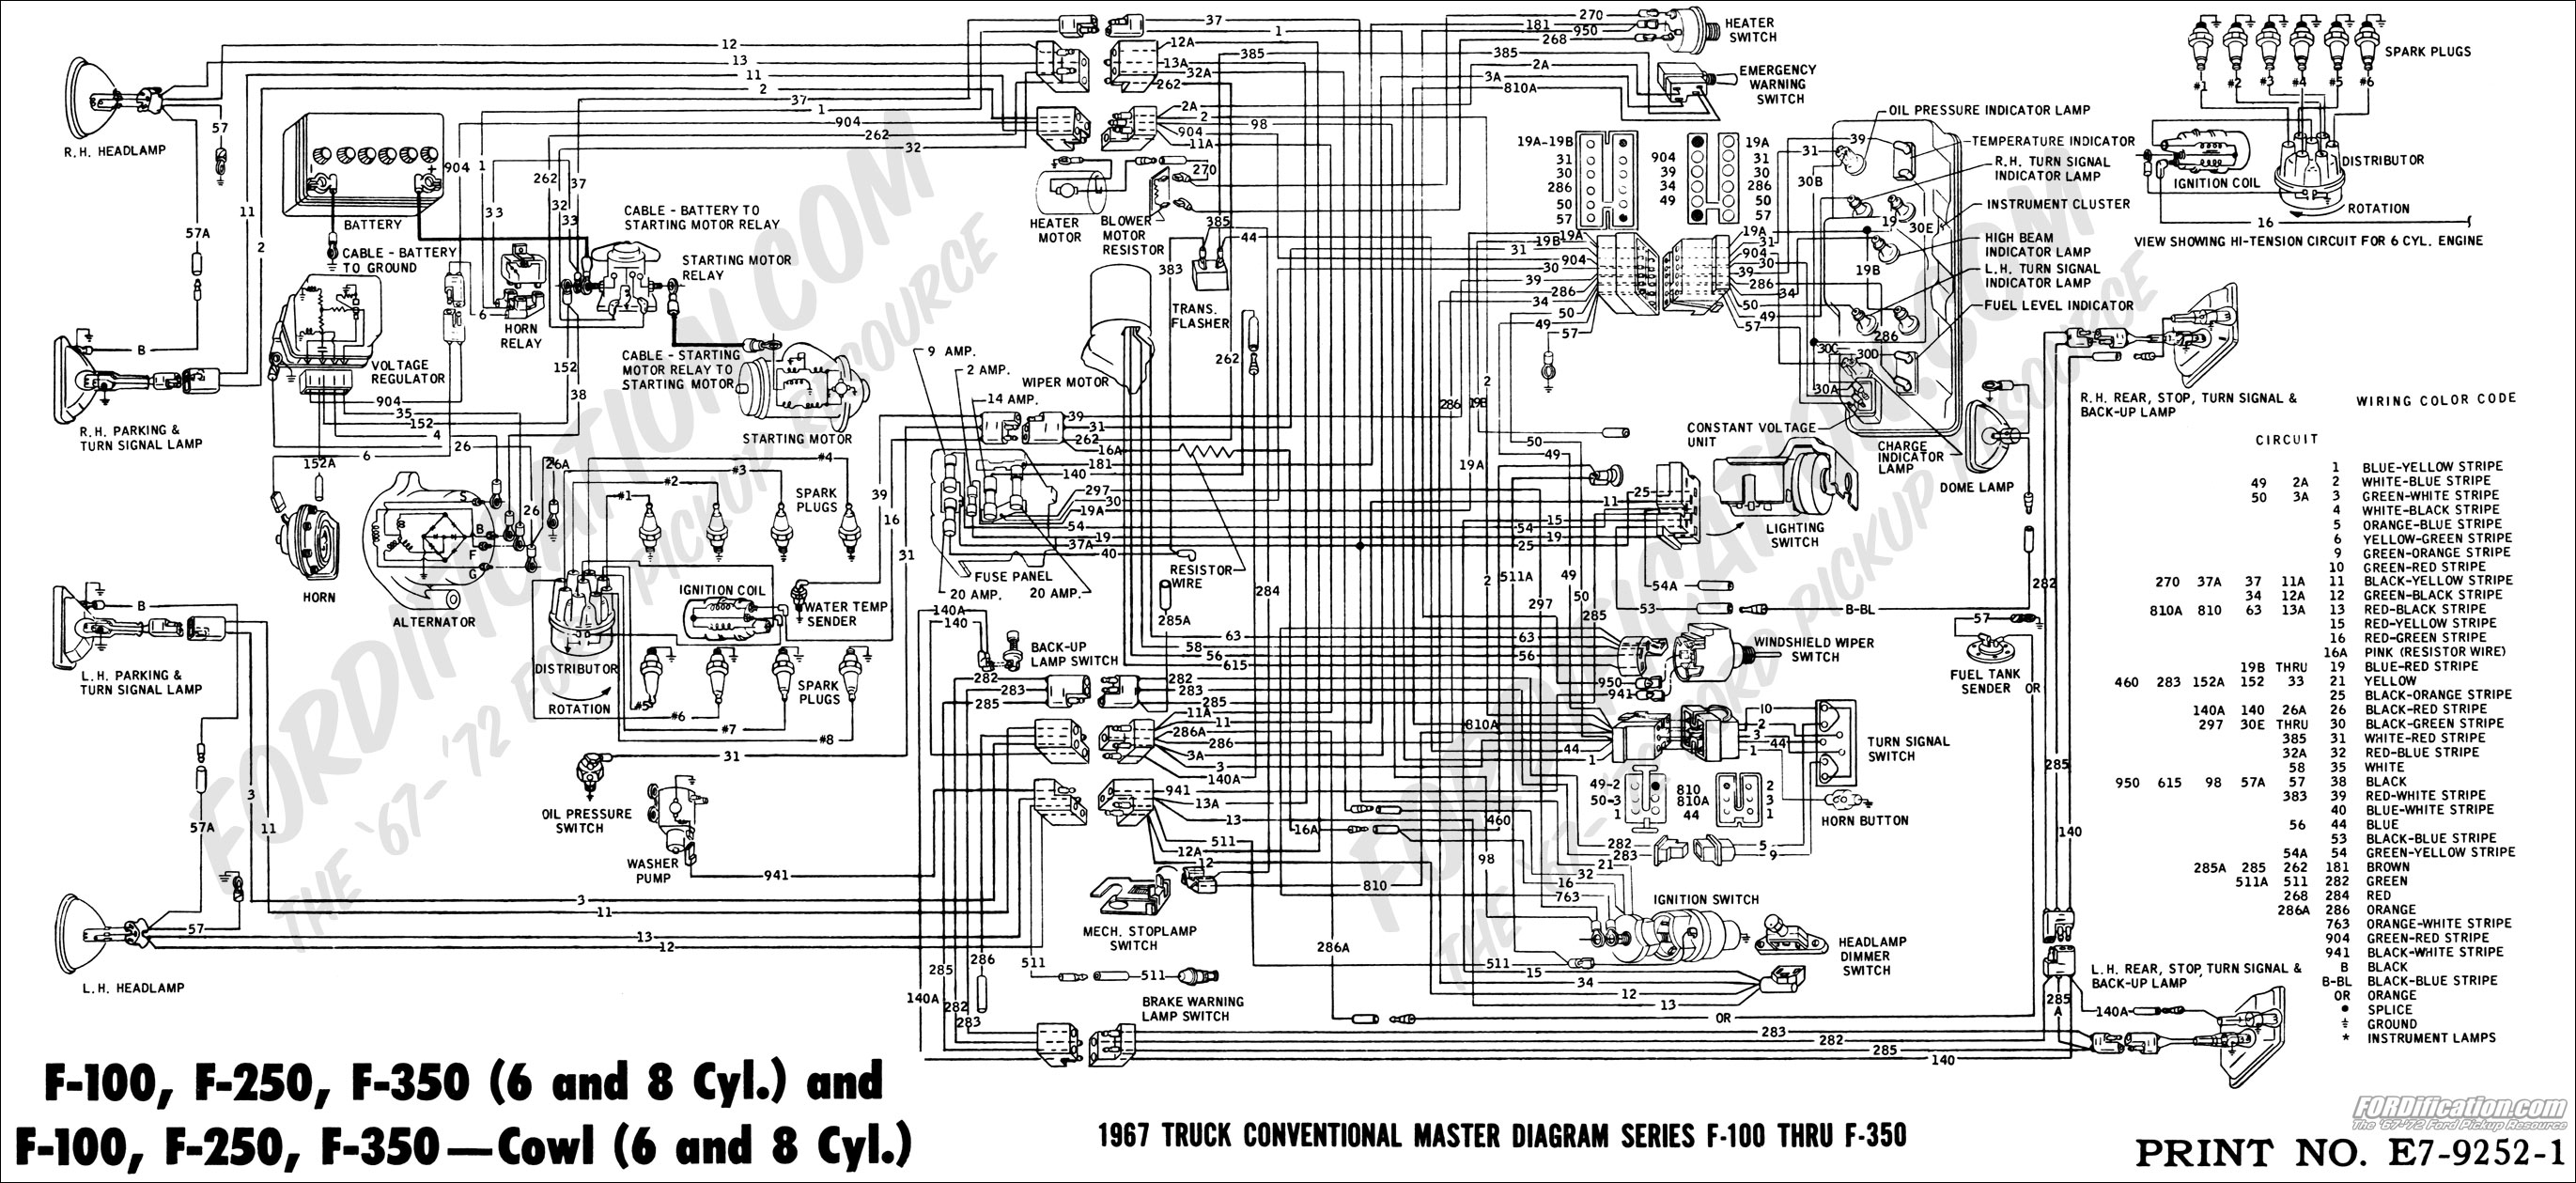 67masterdiagram ford truck technical drawings and schematics section h wiring ford e350 wiring diagram at crackthecode.co